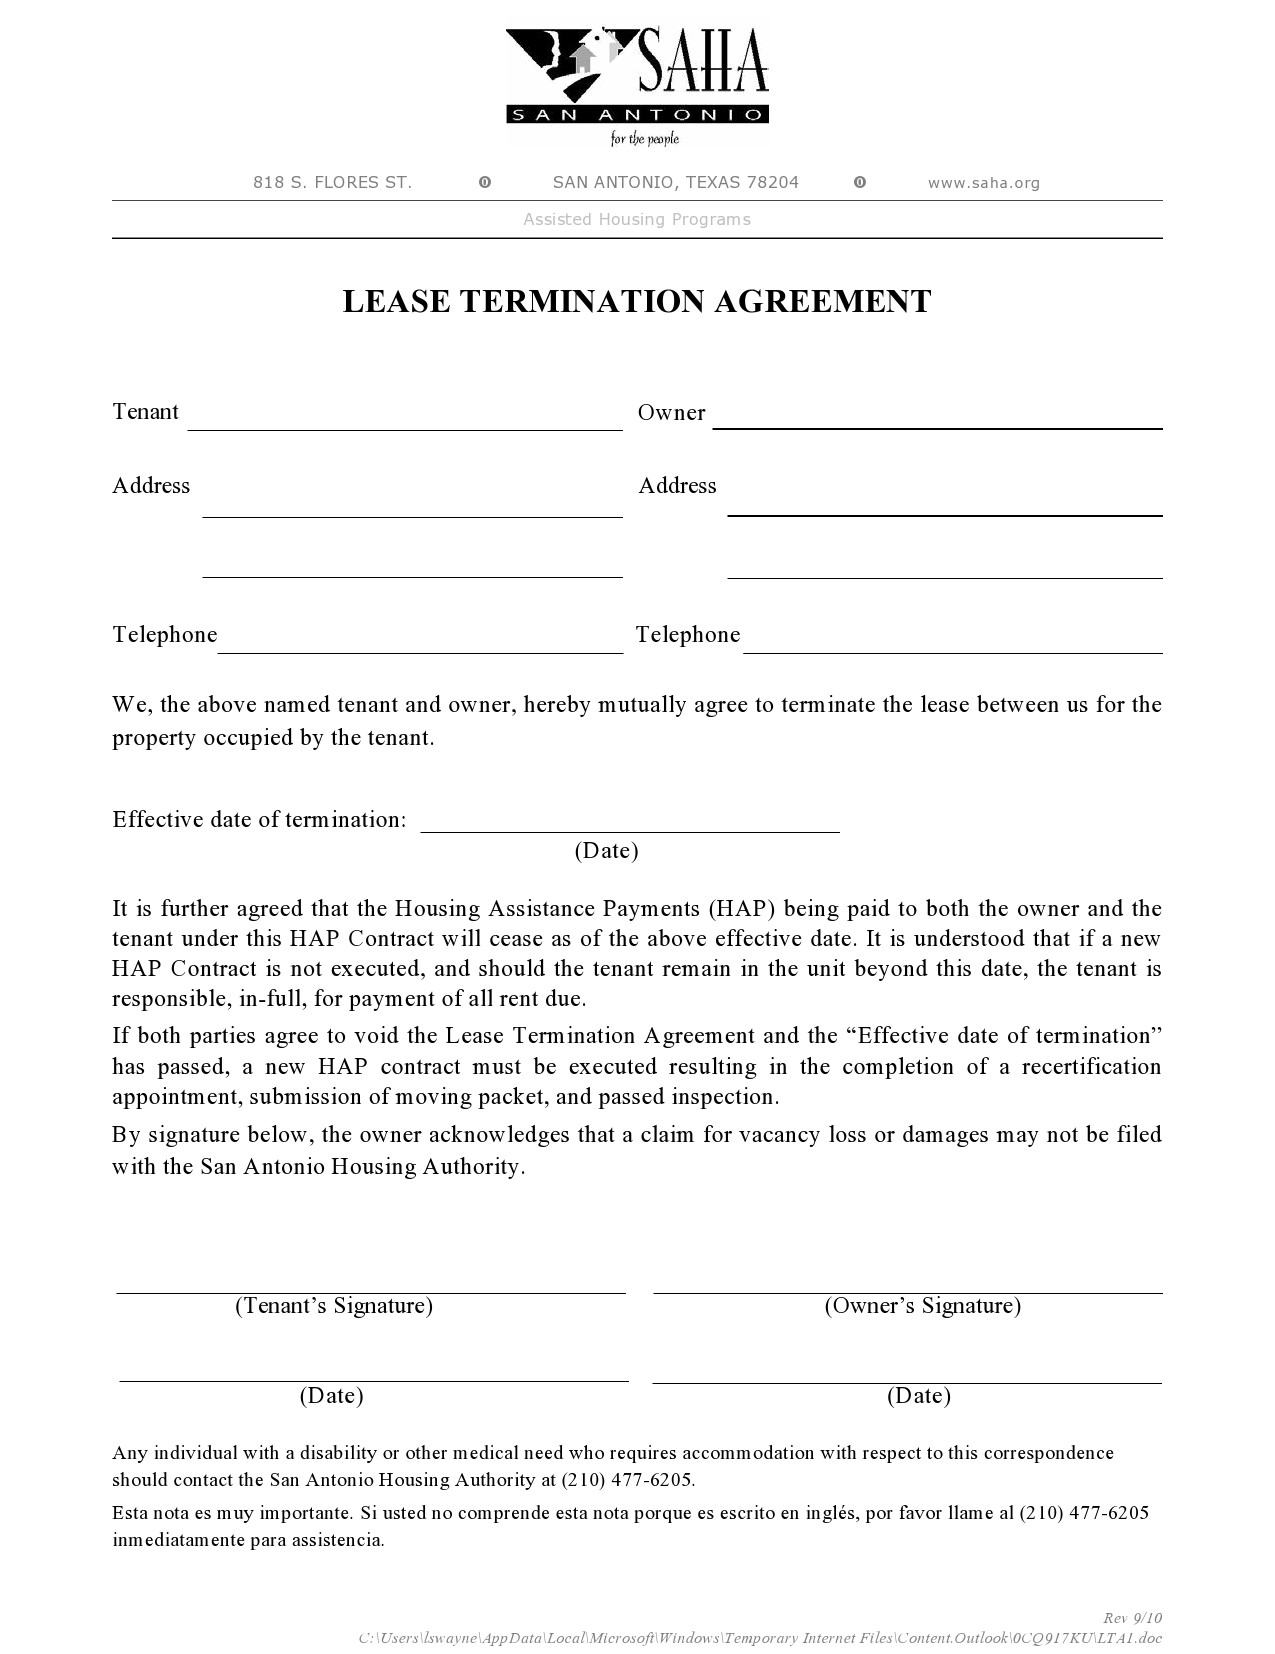 Free lease termination agreement 11